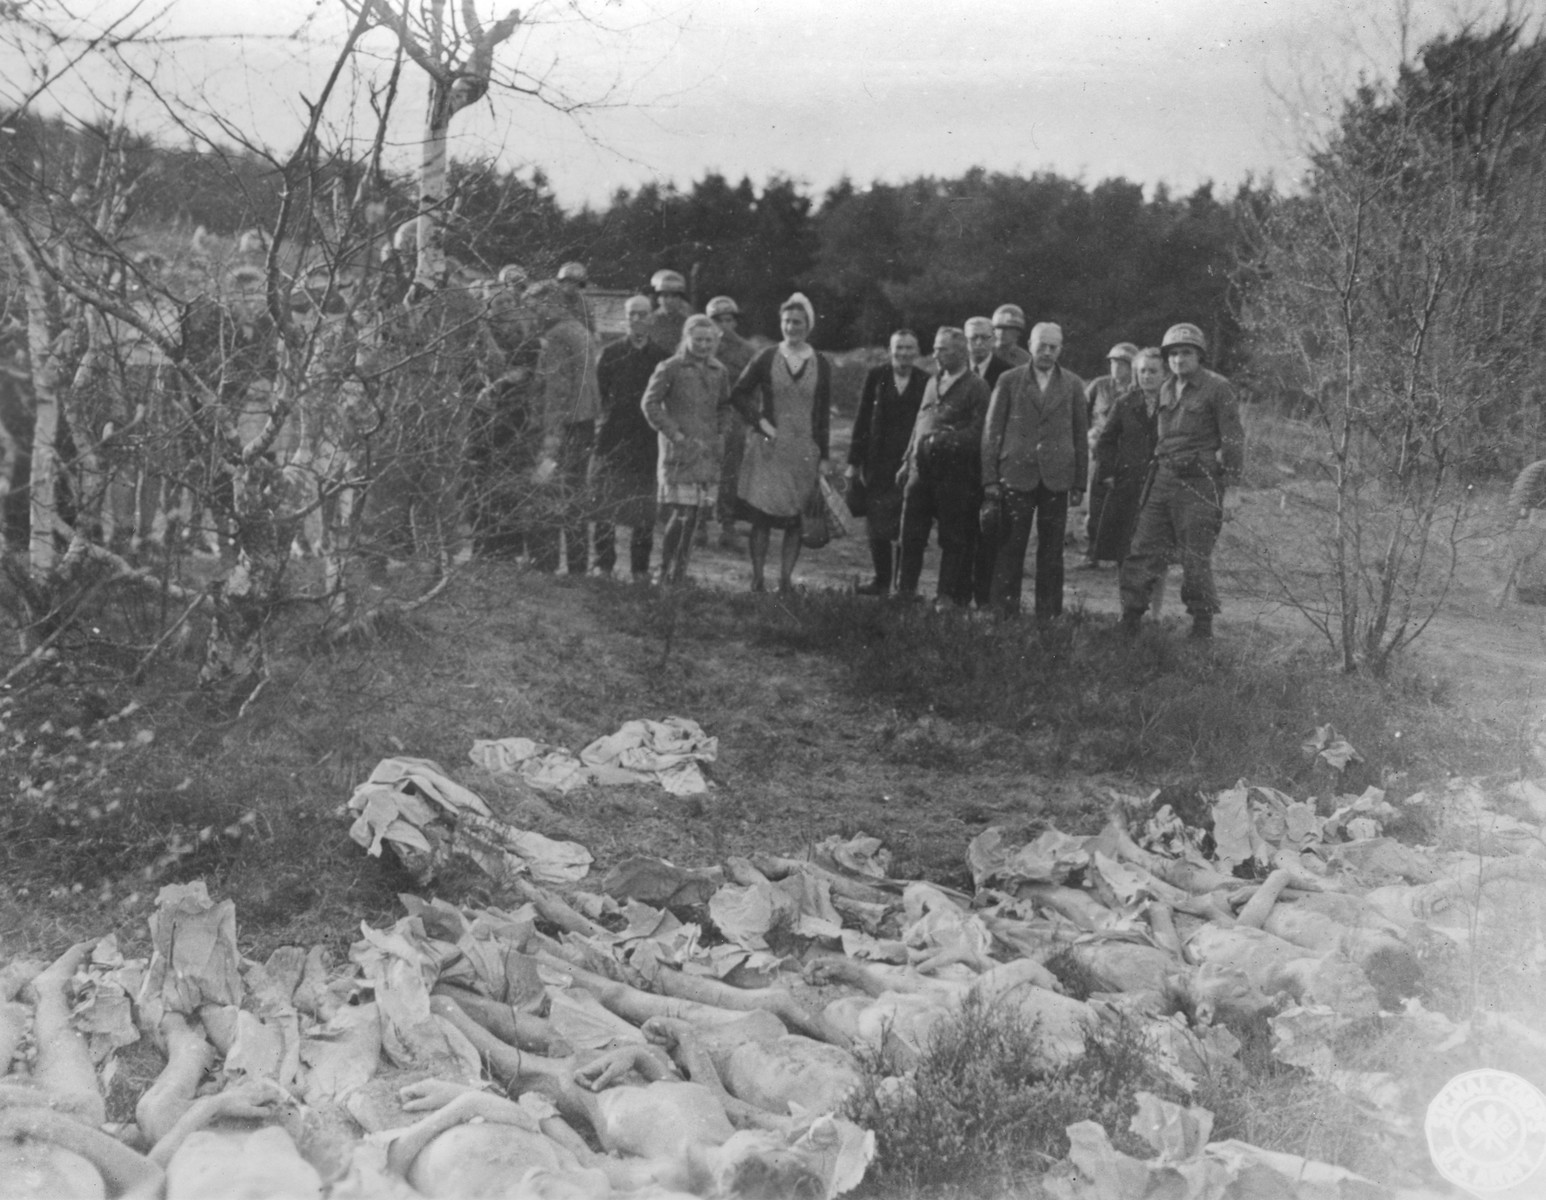 Under the supervision of American soldiers, German civilians view the bodies of female prisoners exhumed from a mass grave near the Helmbrechts concentration camp, a sub-camp of Flossenbuerg.